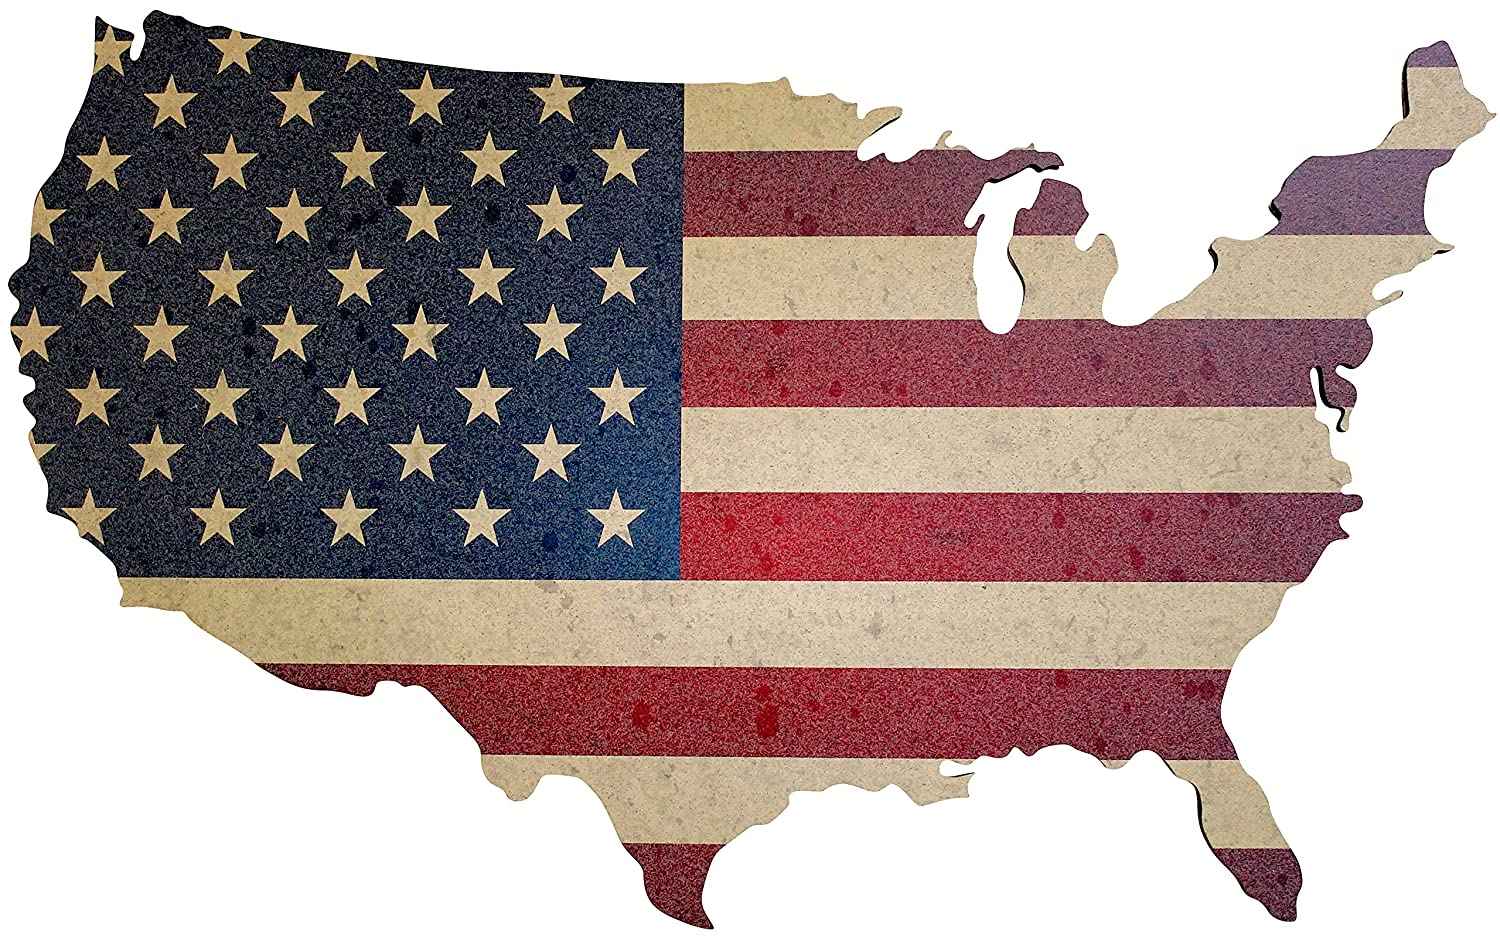 8c5a5c2b271a Amazon.com   Cork Bulletin Board - US Map with Vintage American Flag Print  - Large Decorative 36x22 Inch Wall Art - Pin Board Message Organizer for  Home or ...